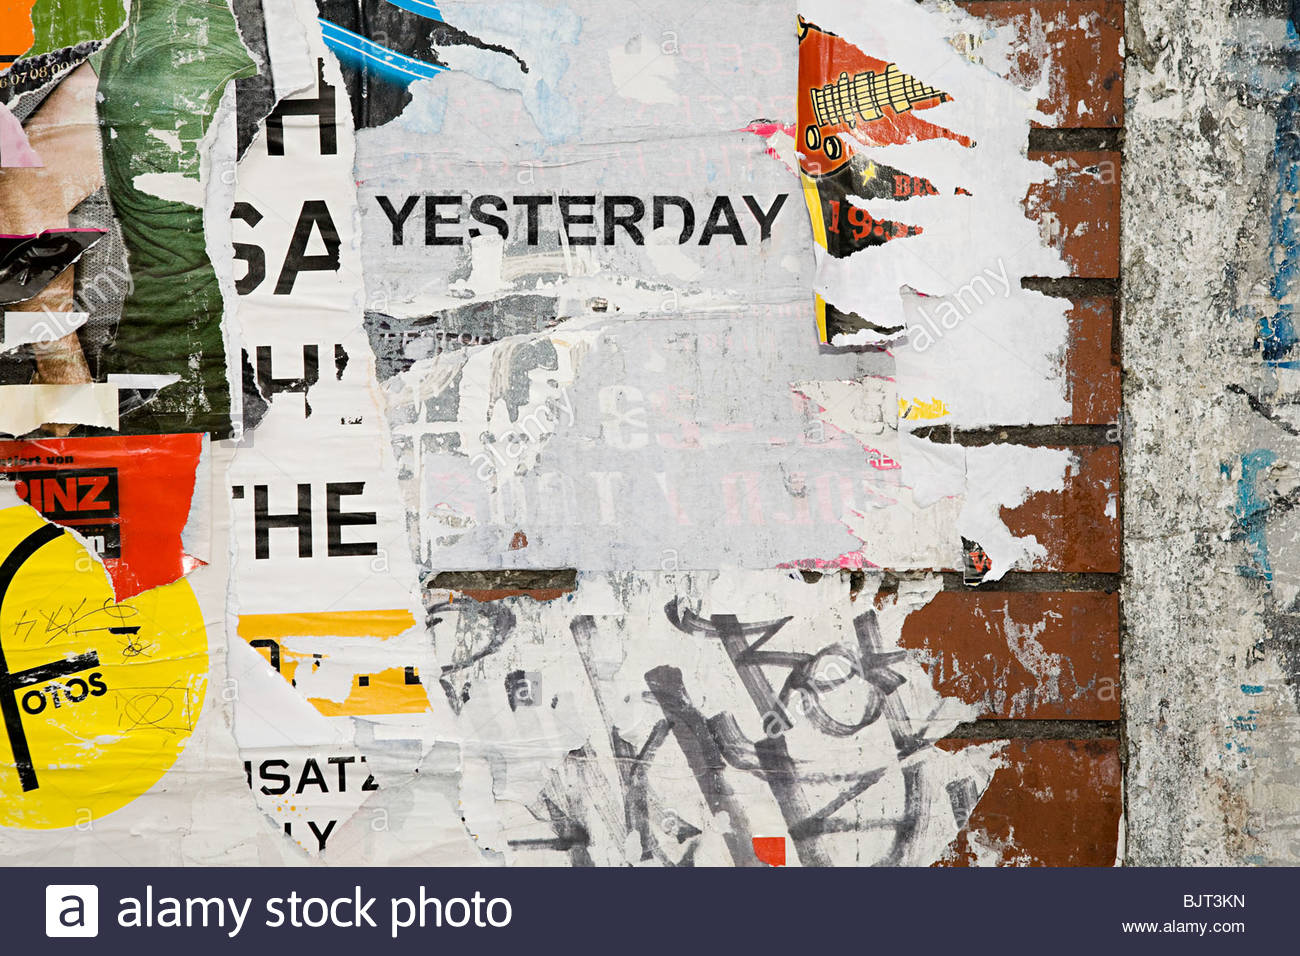 Torn posters on a wall - Stock Image